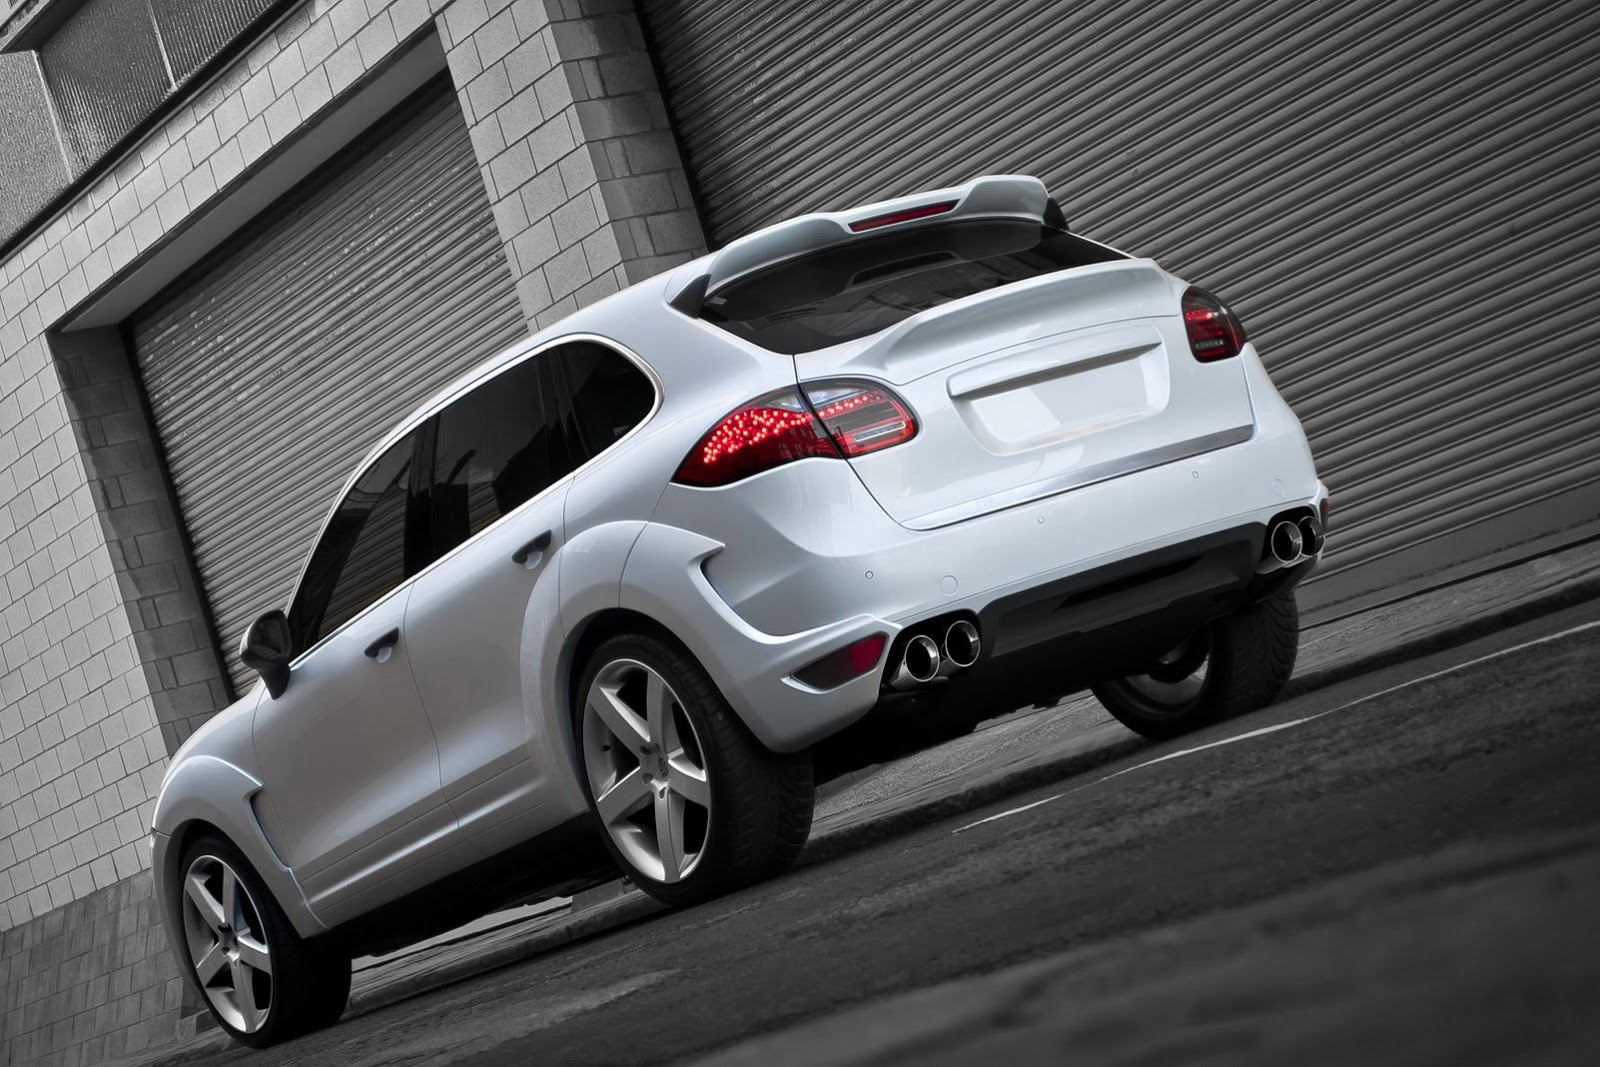 New Porsche Cayenne Diesel tuned by Kahn Design